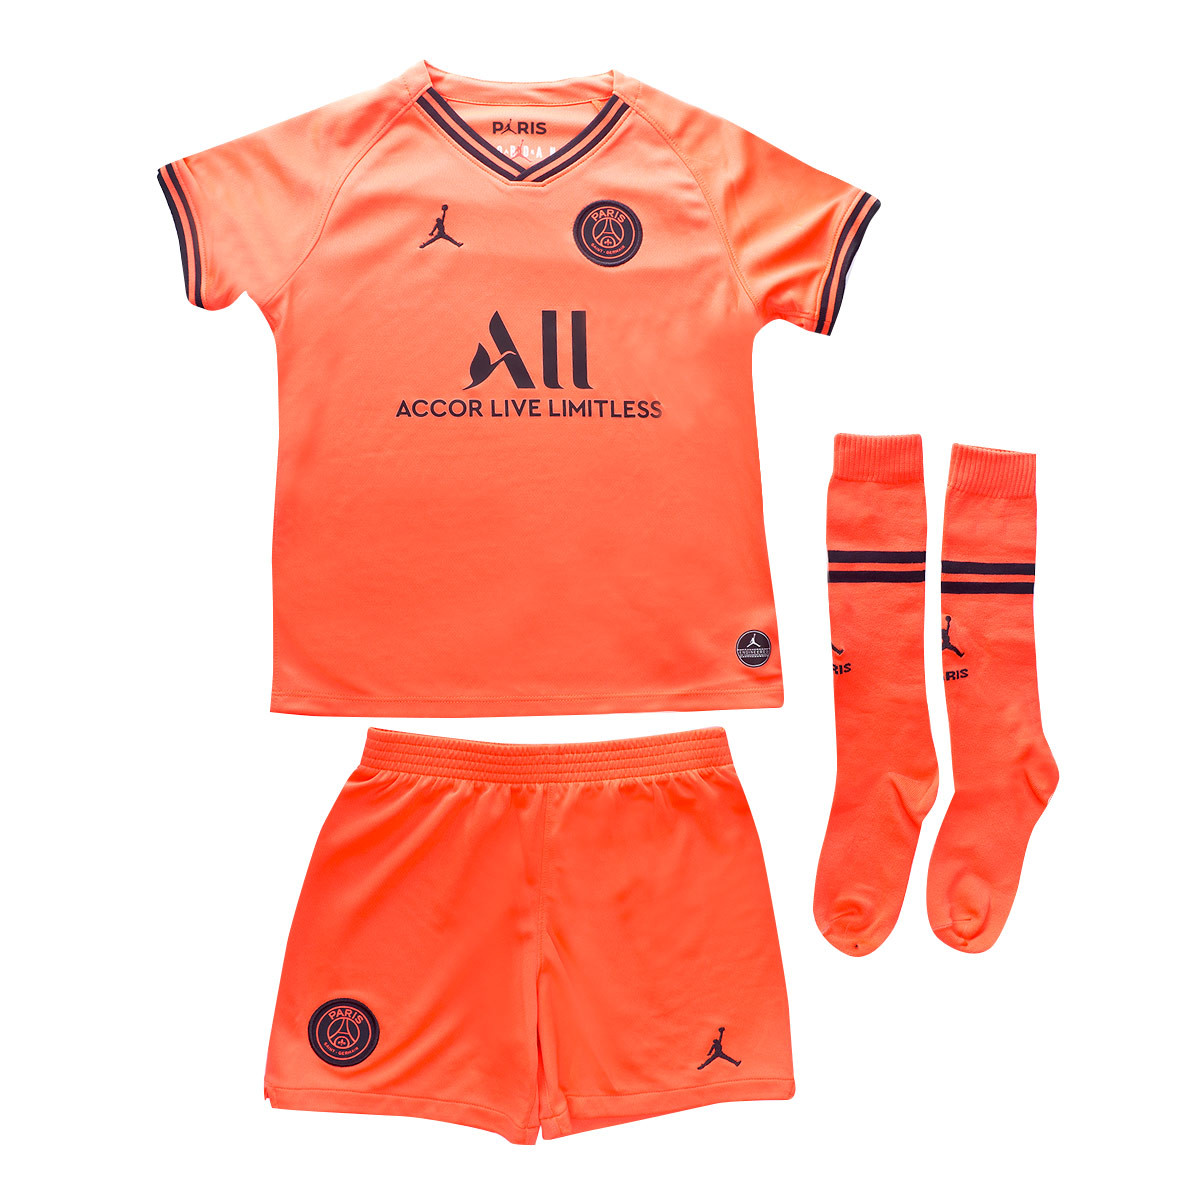 sale retailer 4b886 0f256 Conjunto Paris Saint-Germain Breathe Segunda Equipación 2019-2020 Niño  Infrared-Black